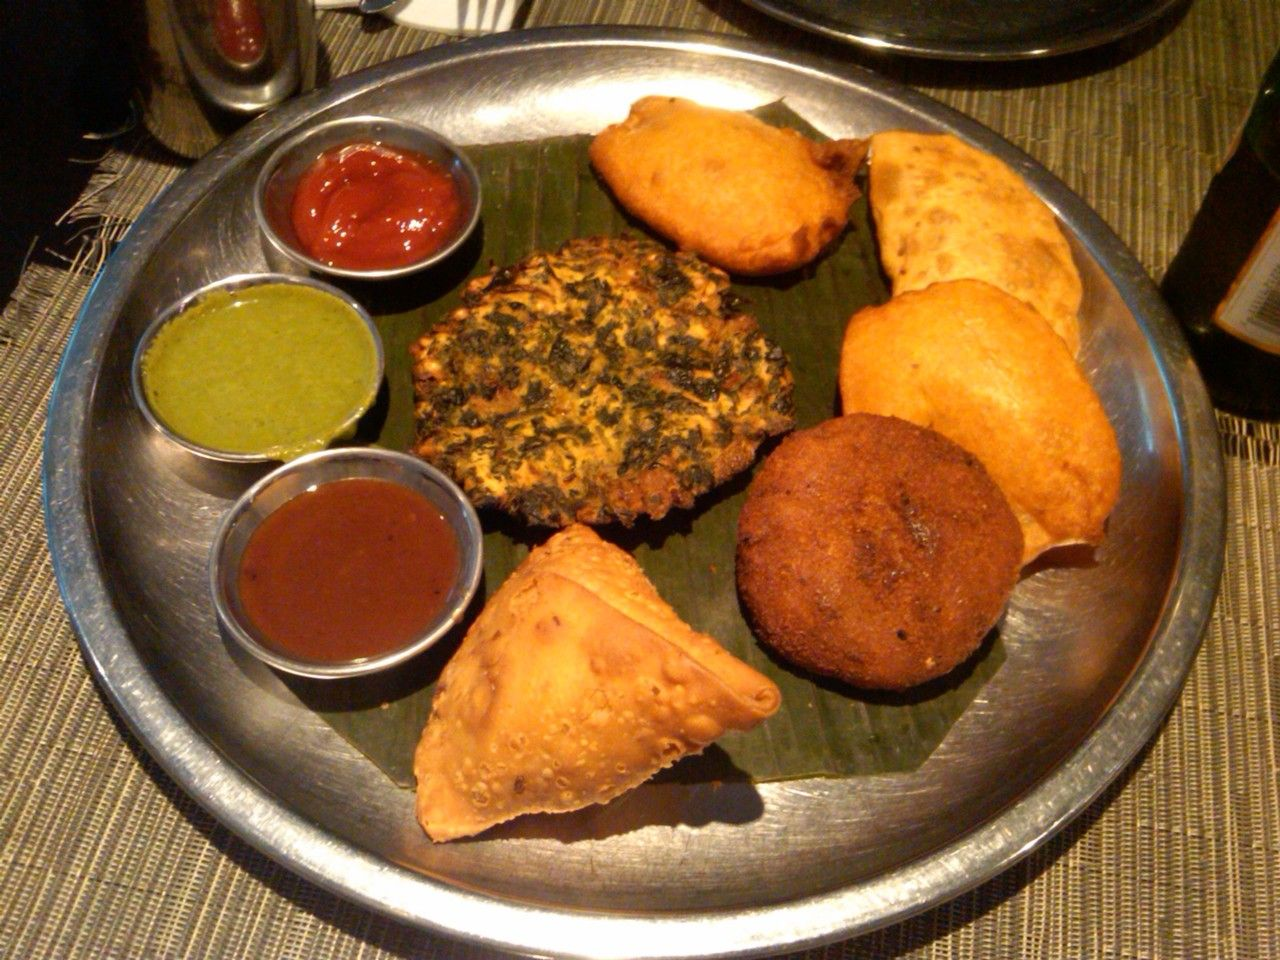 Pongal Vegetarian Indian Restaurant In Midtown Nyc Love The Dosas 6 8 10